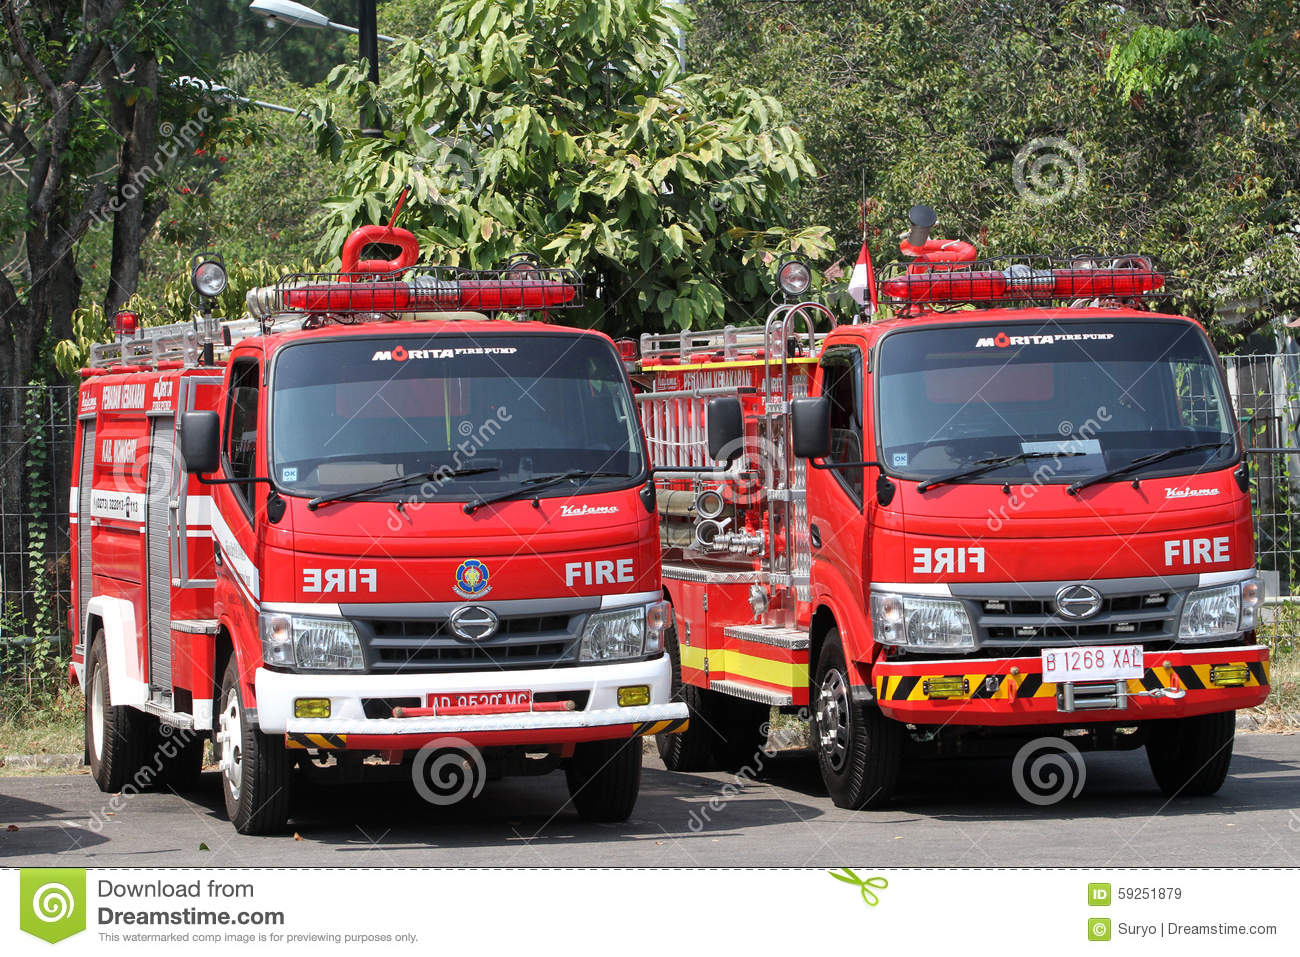 Met Parking Services >> Fire Truck Editorial Stock Image Image Of Indonesia 59251879